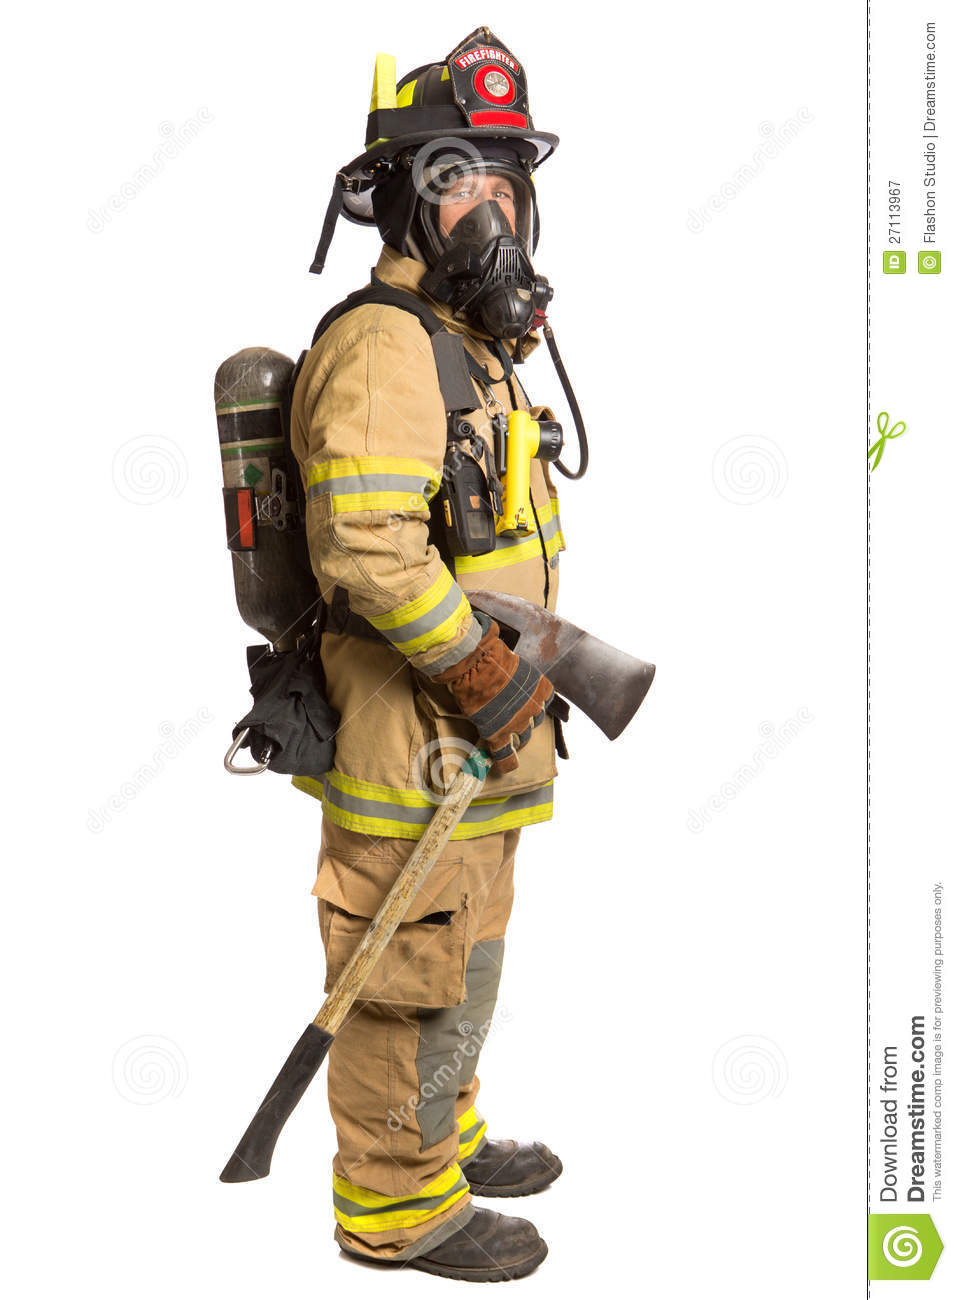 Firefighter With Mask And Fully Protective Suit Stock ...